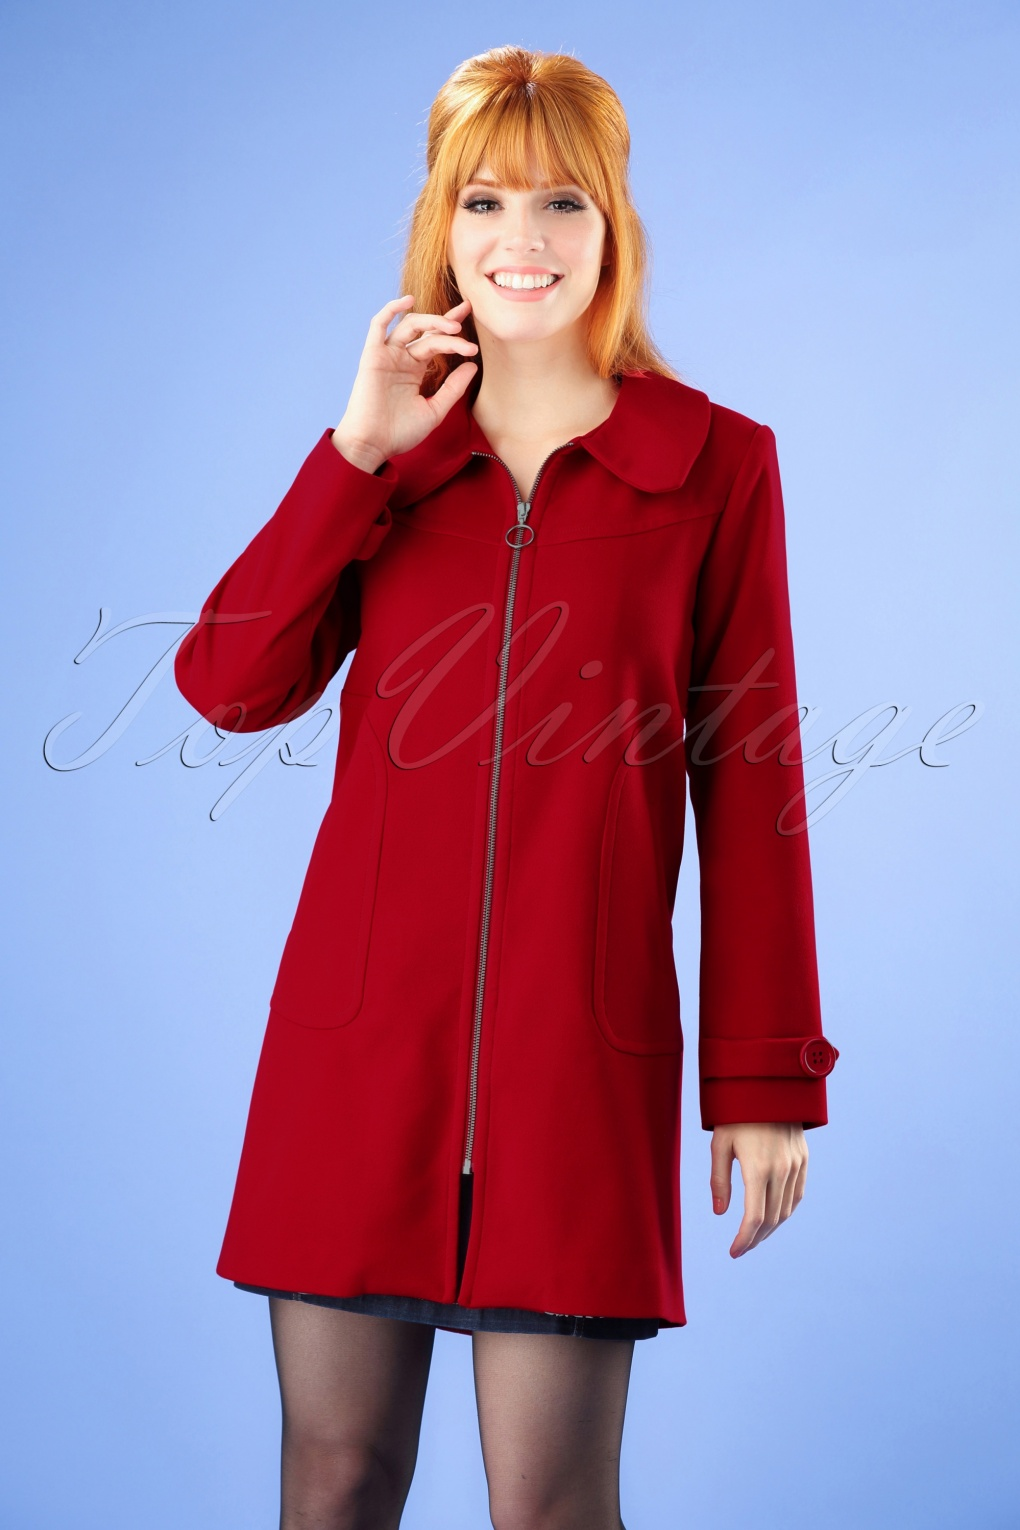 Vintage Coats & Jackets | Retro Coats and Jackets 60s For Those Cosy Moments Coat in Red £149.01 AT vintagedancer.com